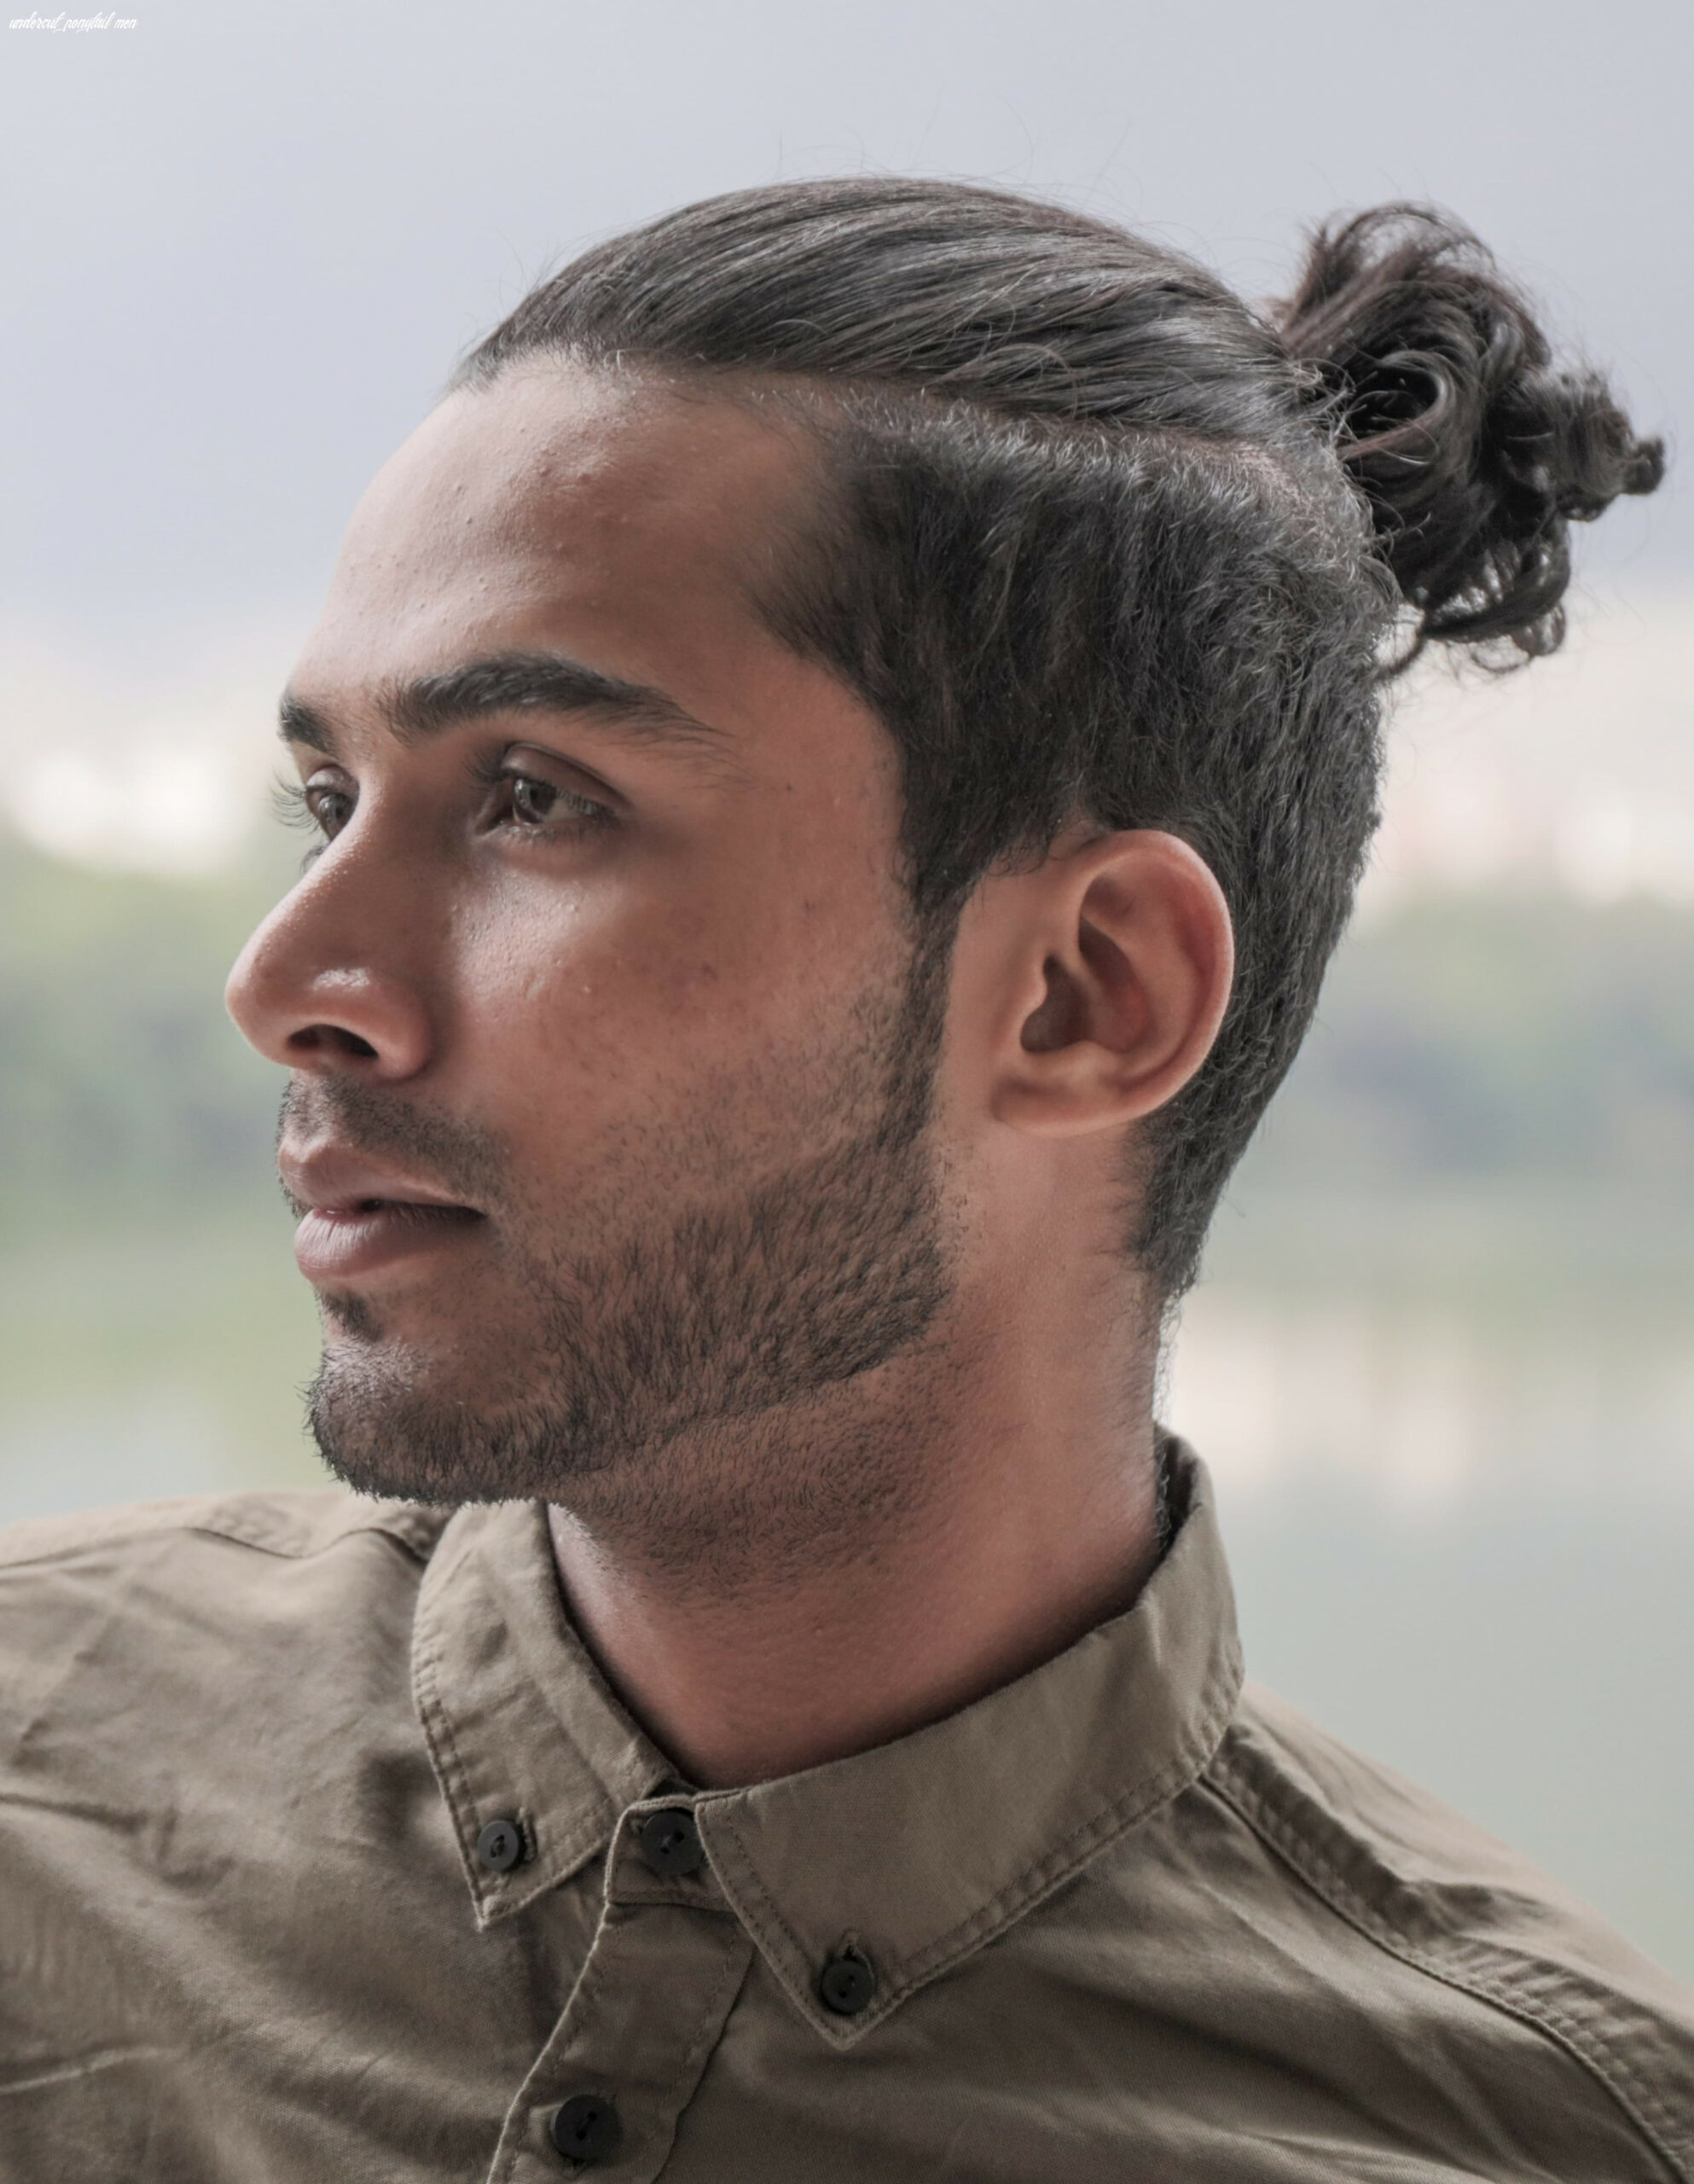 The top knot hairstyle visual guide for men (12 different styles) undercut ponytail men